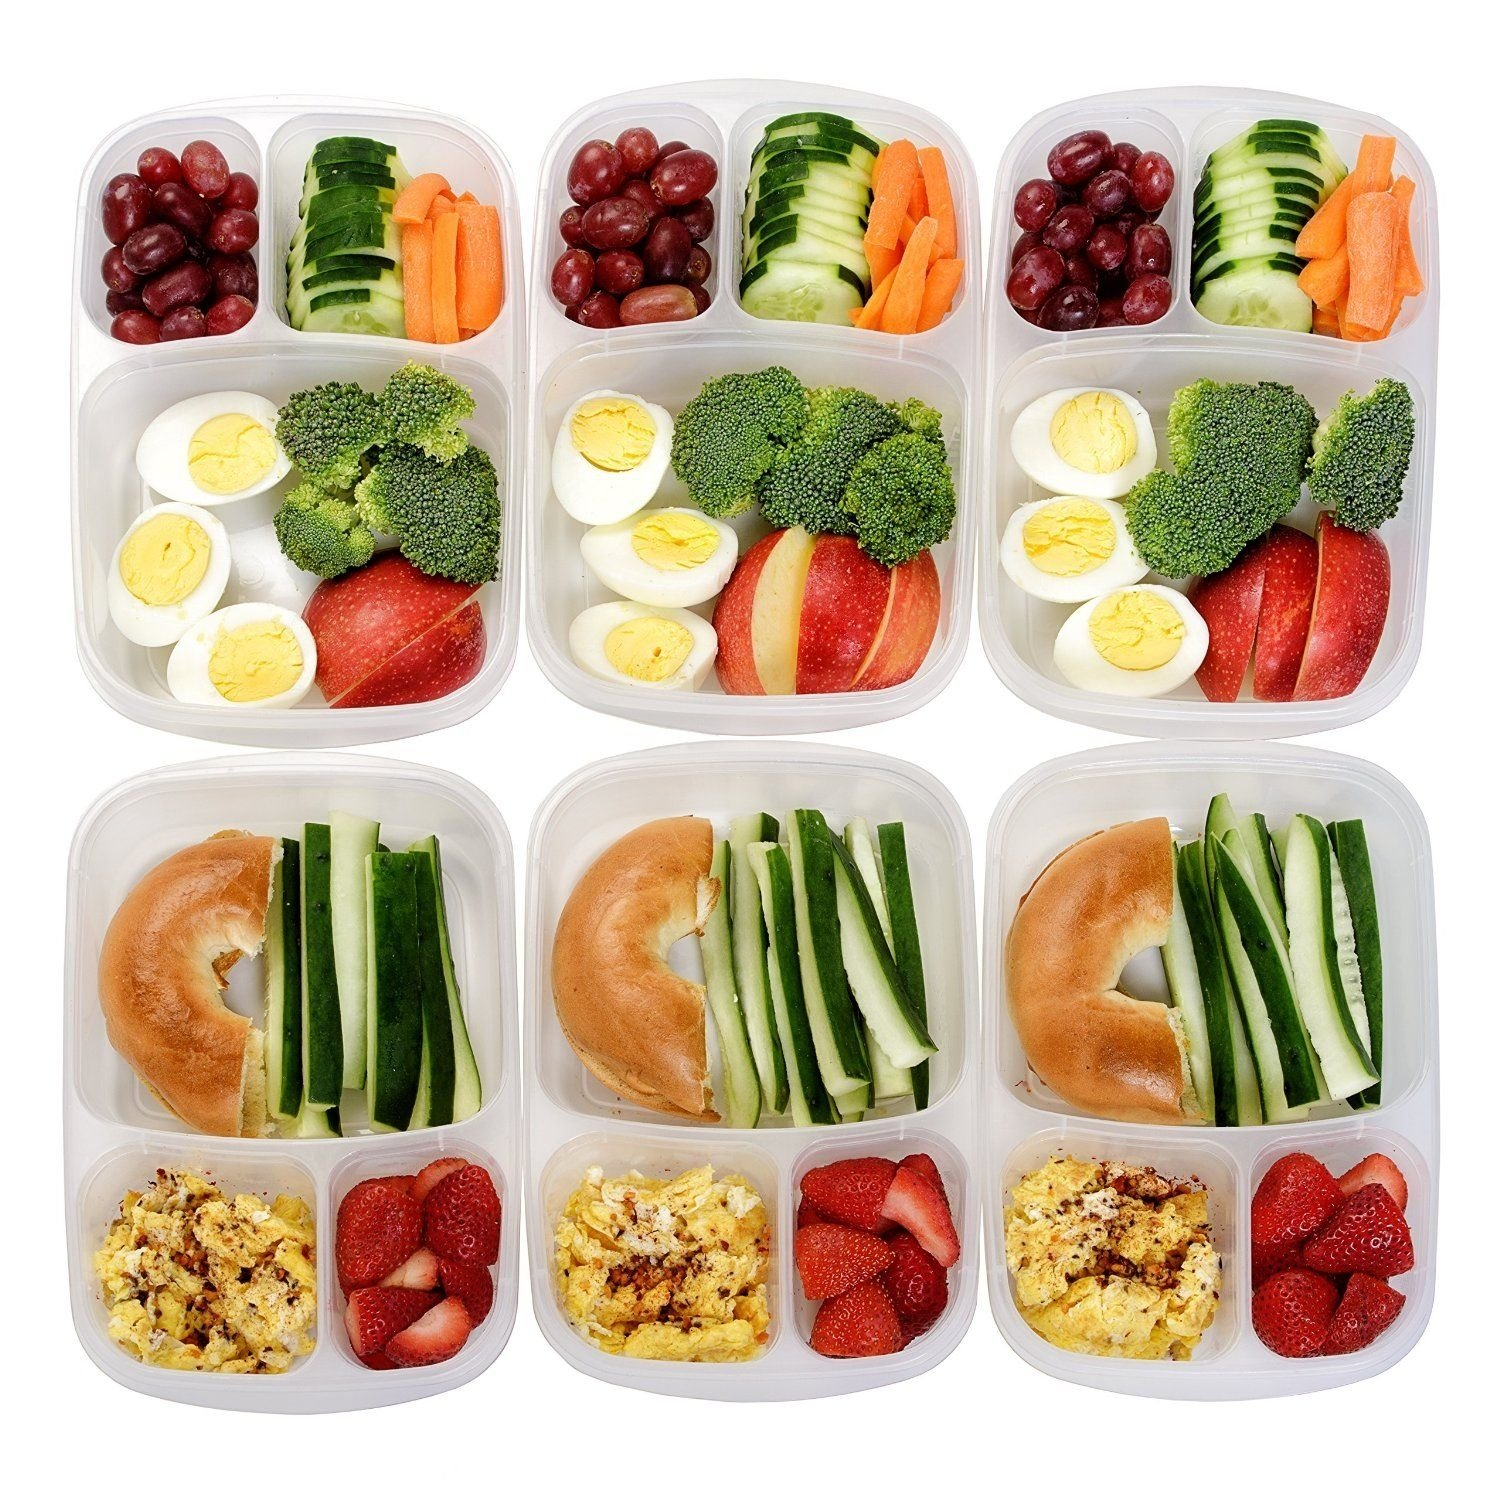 10 Elegant Healthy Dinner Ideas For Weight Loss 13 make ahead meals for healthy eating on the go meals snacks and 2020